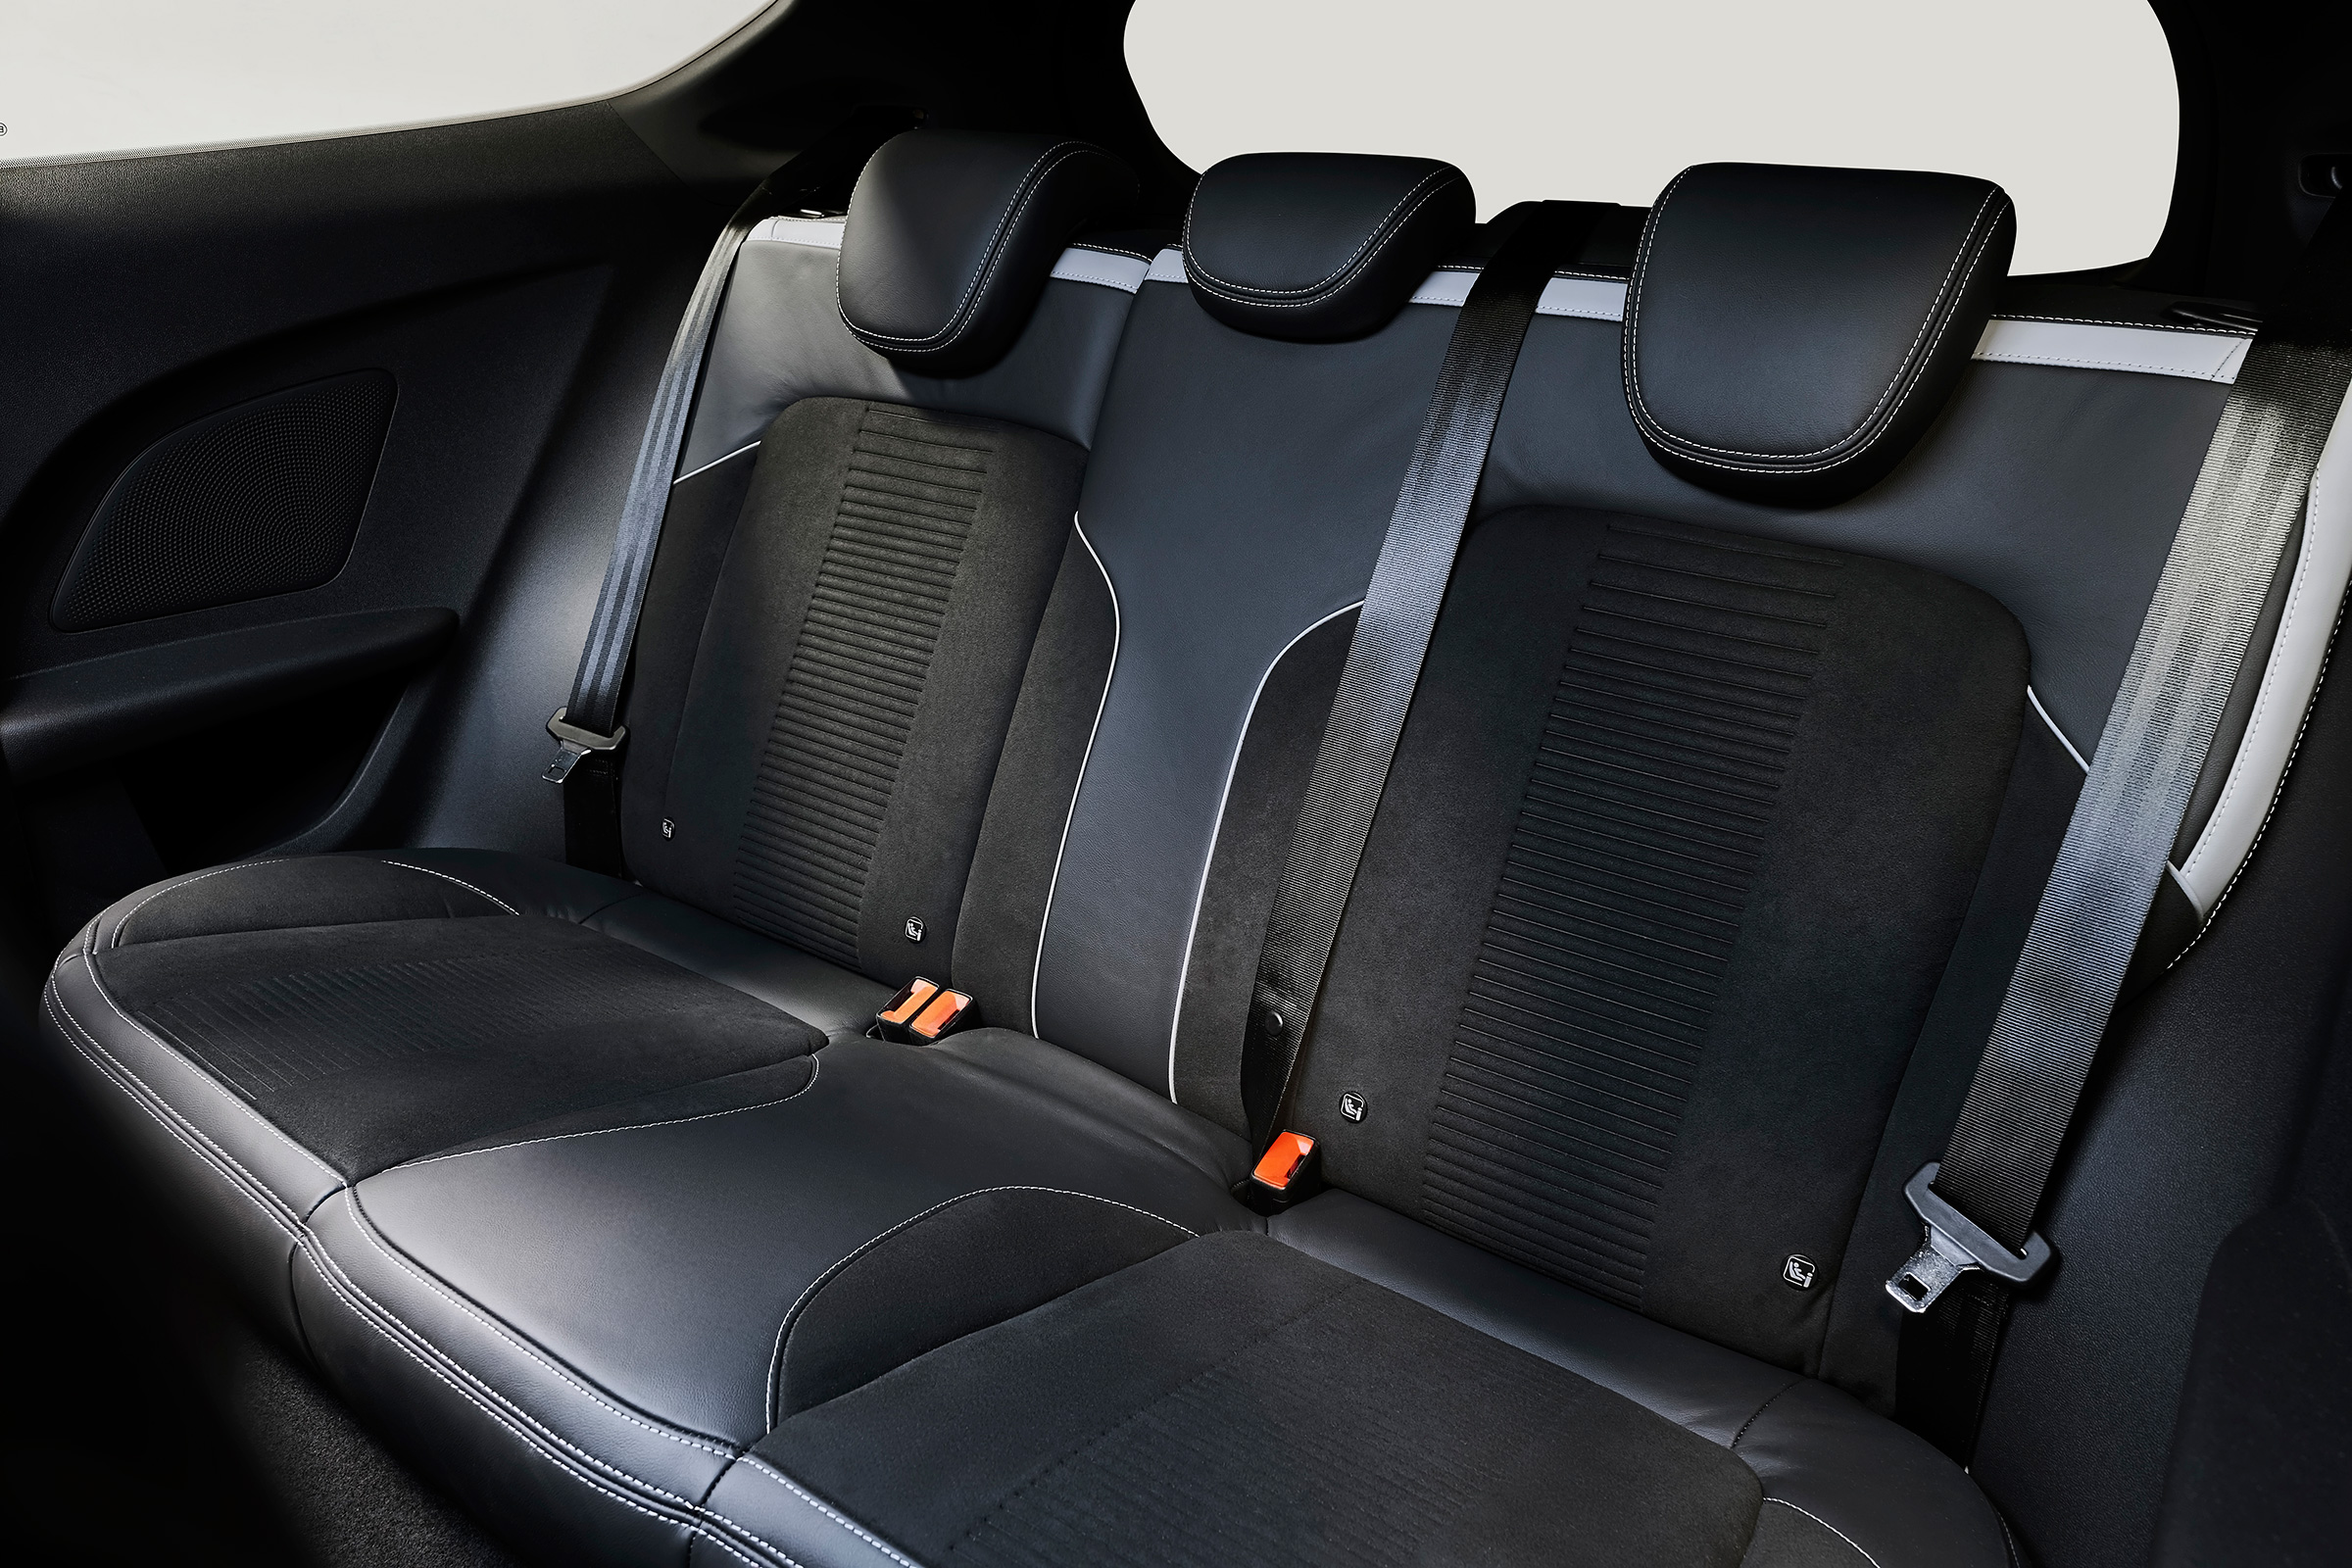 2018 Ford Fiesta ST Interior Seats Rear (Photo 13 of 14)